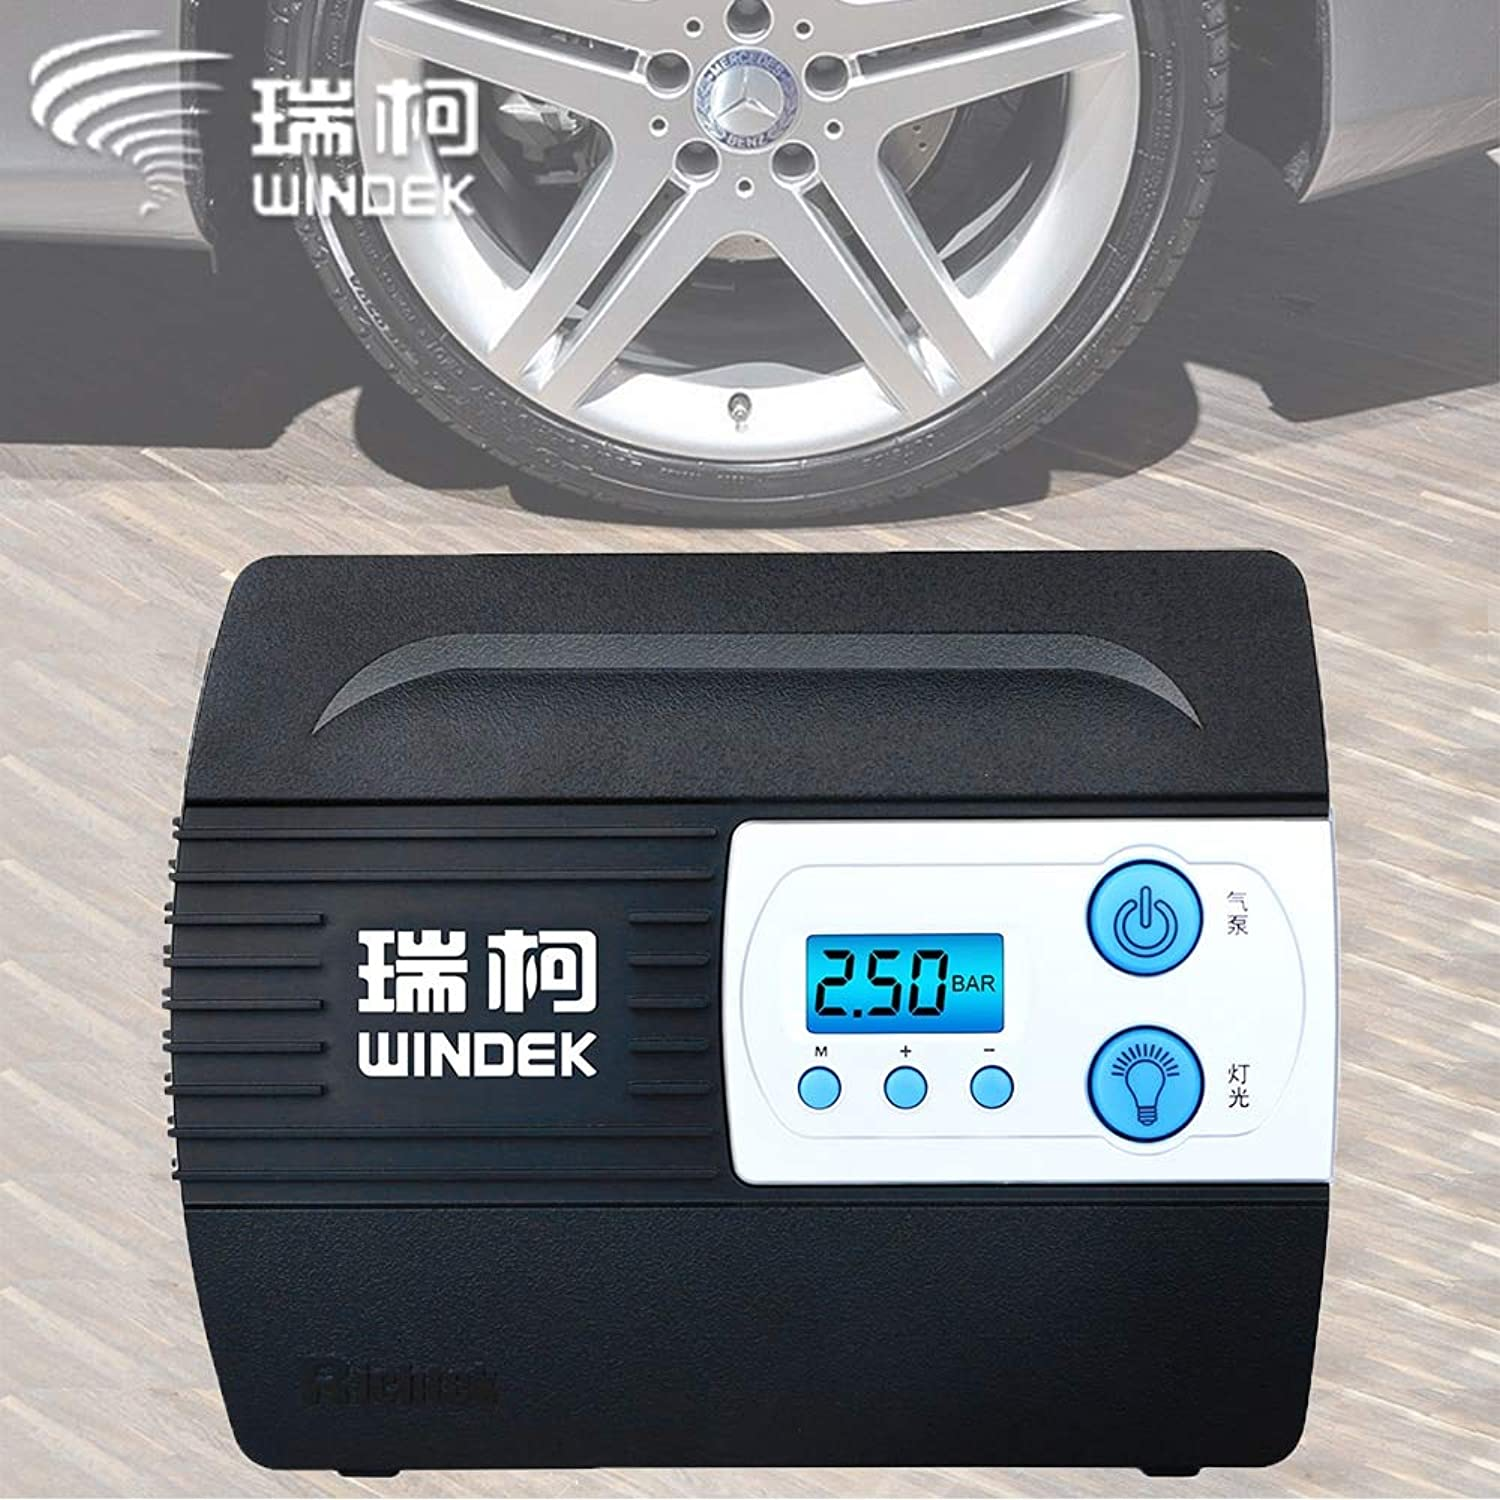 AoforzBrand Car Auto Air Compressor Tire Inflator Pump with Preset Tyre Pressure and Inflate Auto Stop Function for Tires 12V Digital